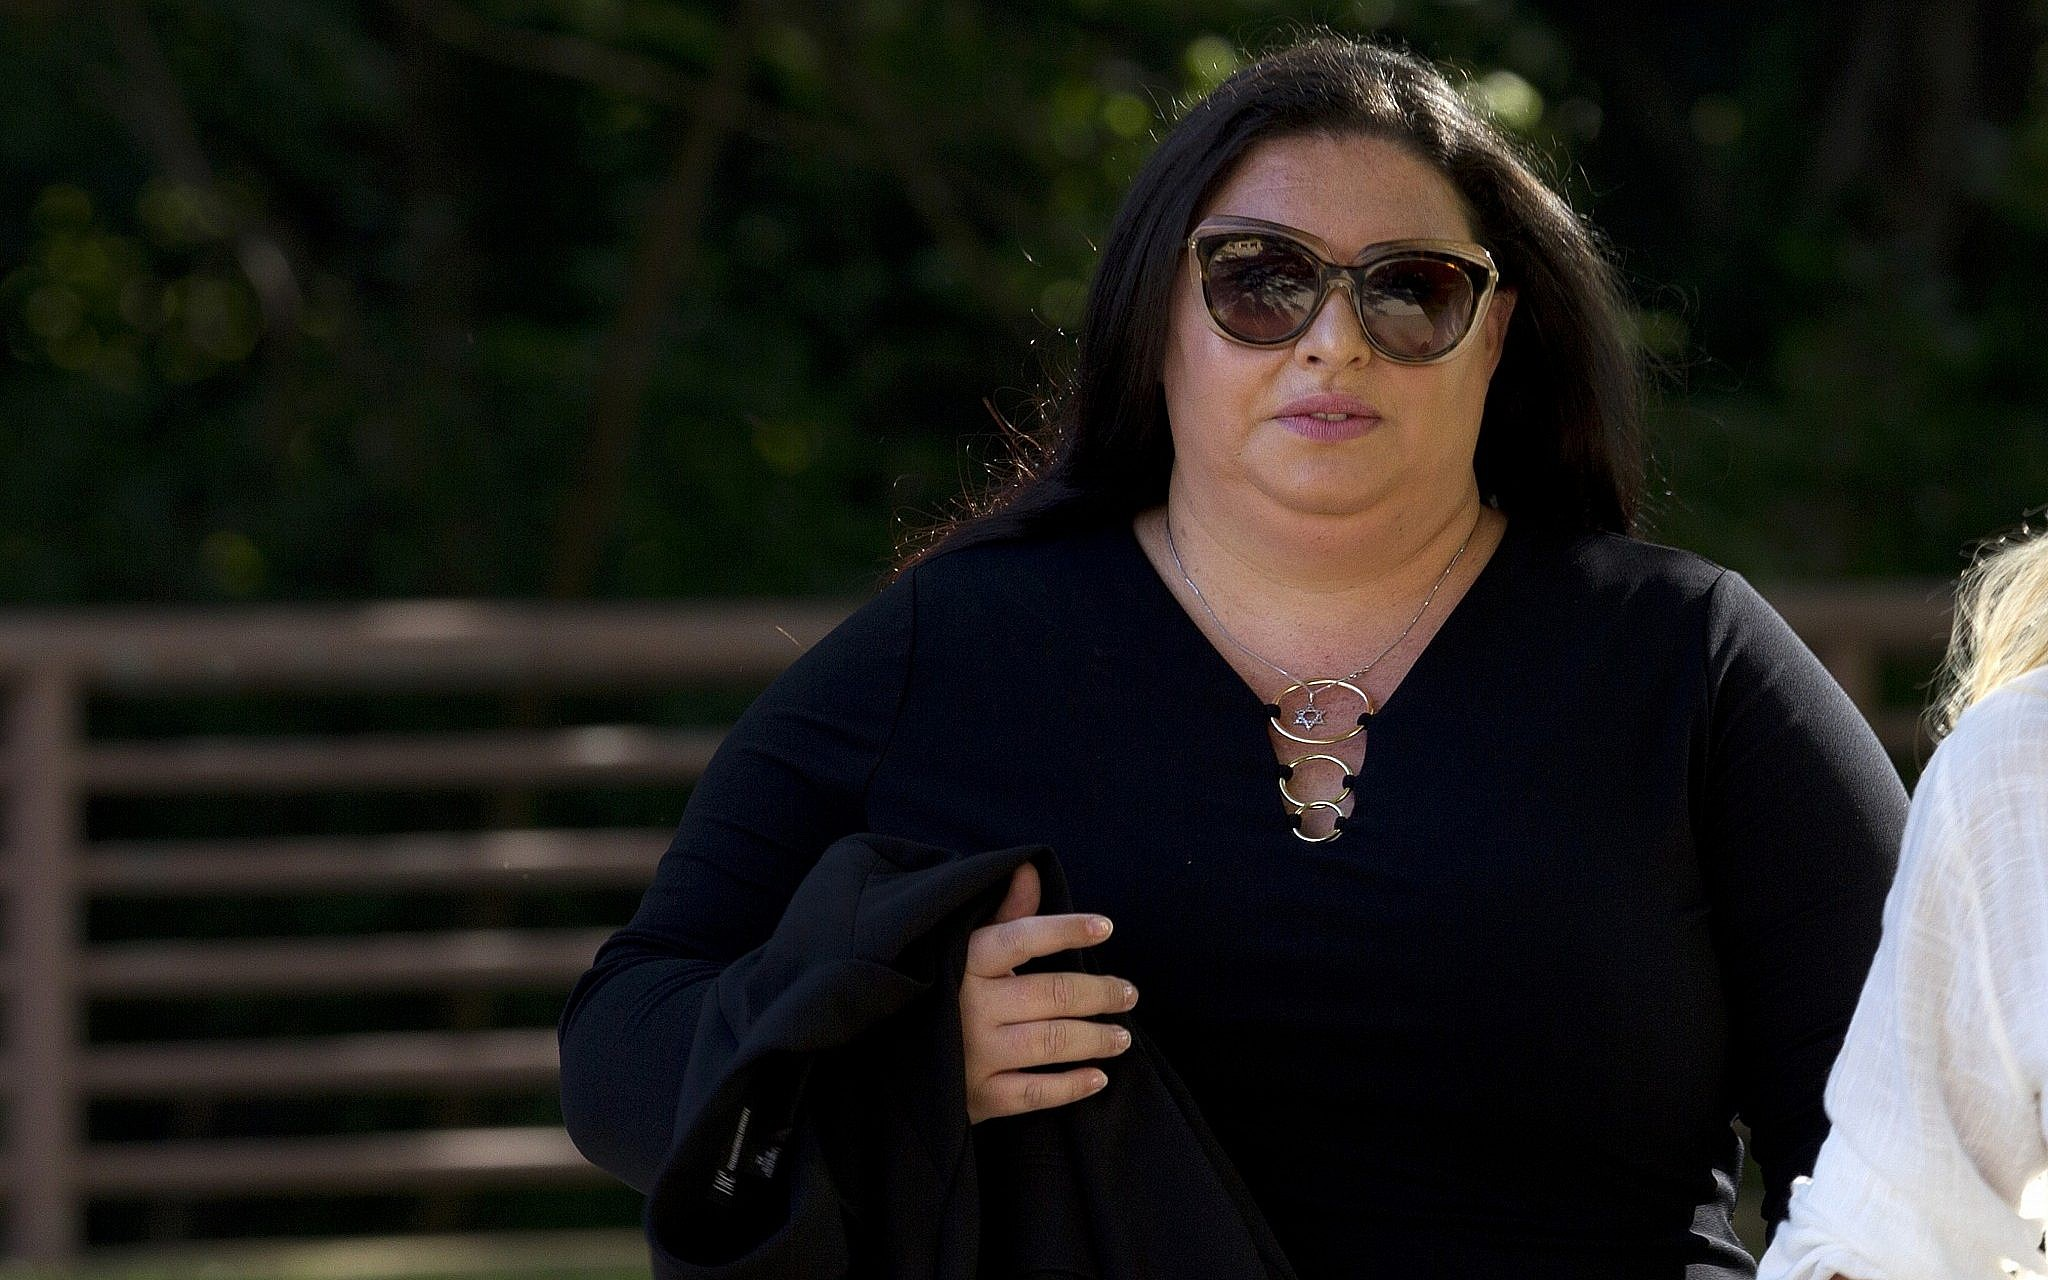 Israeli binary options operative Lee Elbaz convicted in US in $145